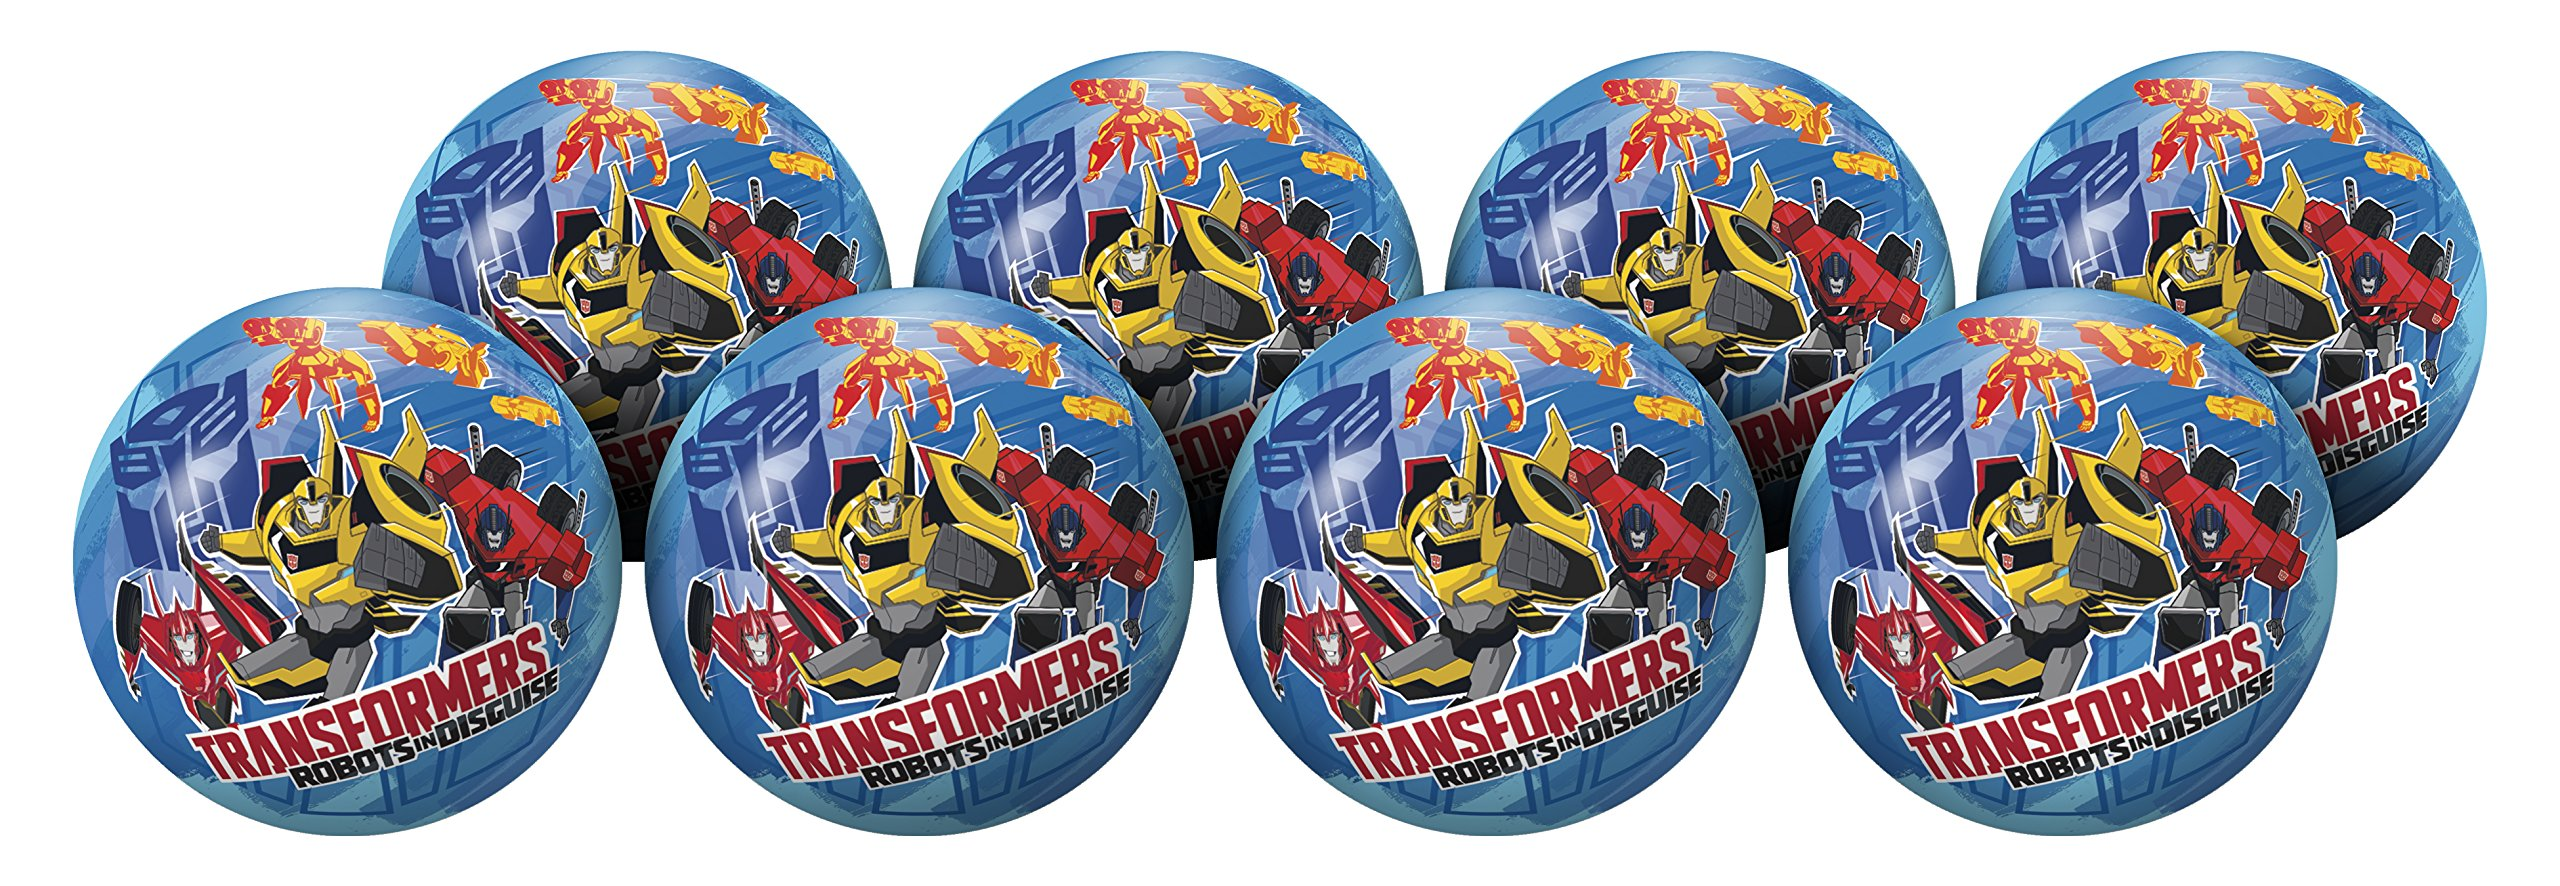 Hedstrom Transformers Playball Party Pack, 6 Inch, 8 Balls